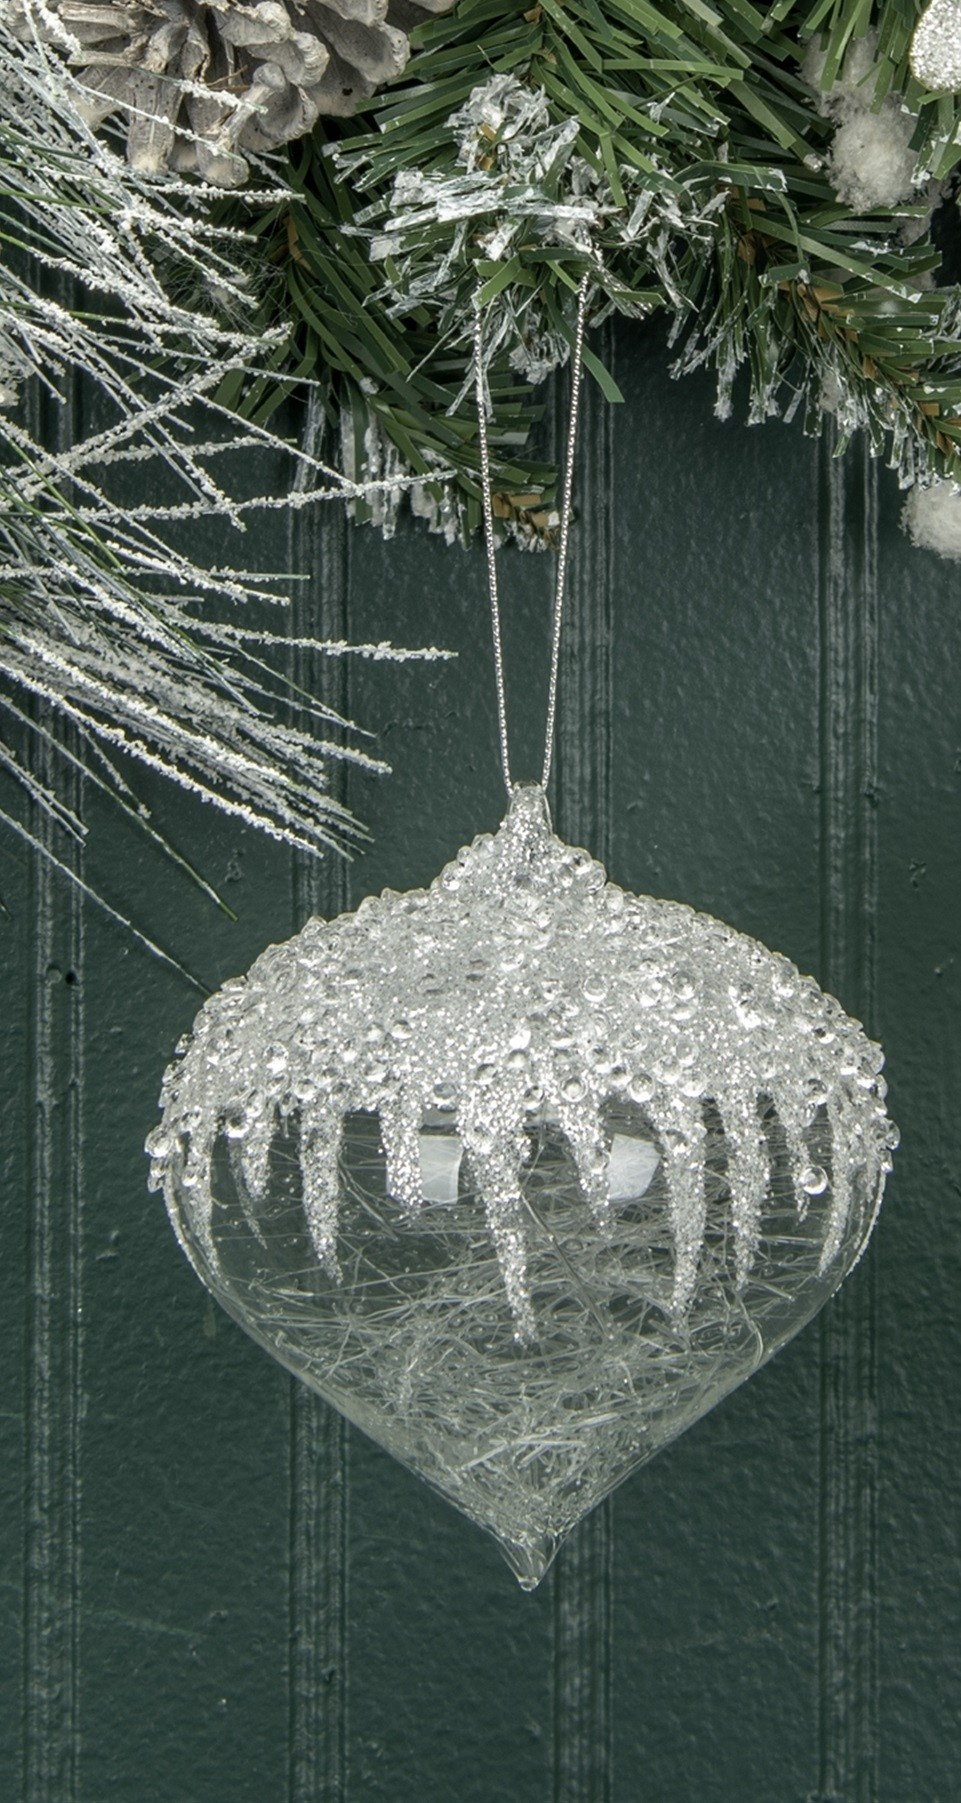 Small Ice Capped Spun Glass Ornament